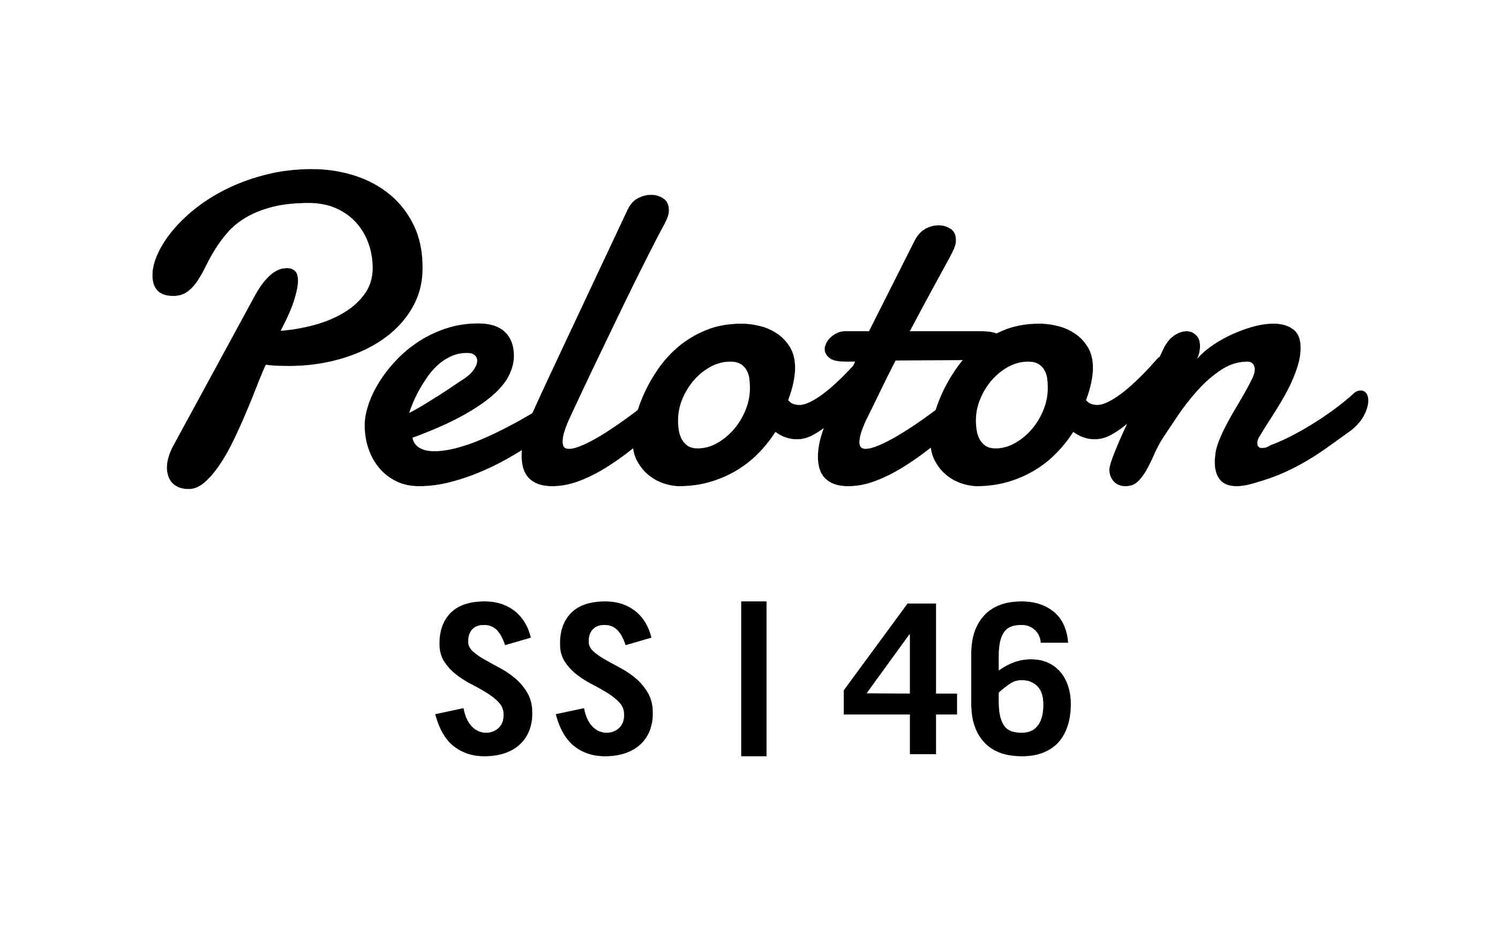 Peloton Supershop